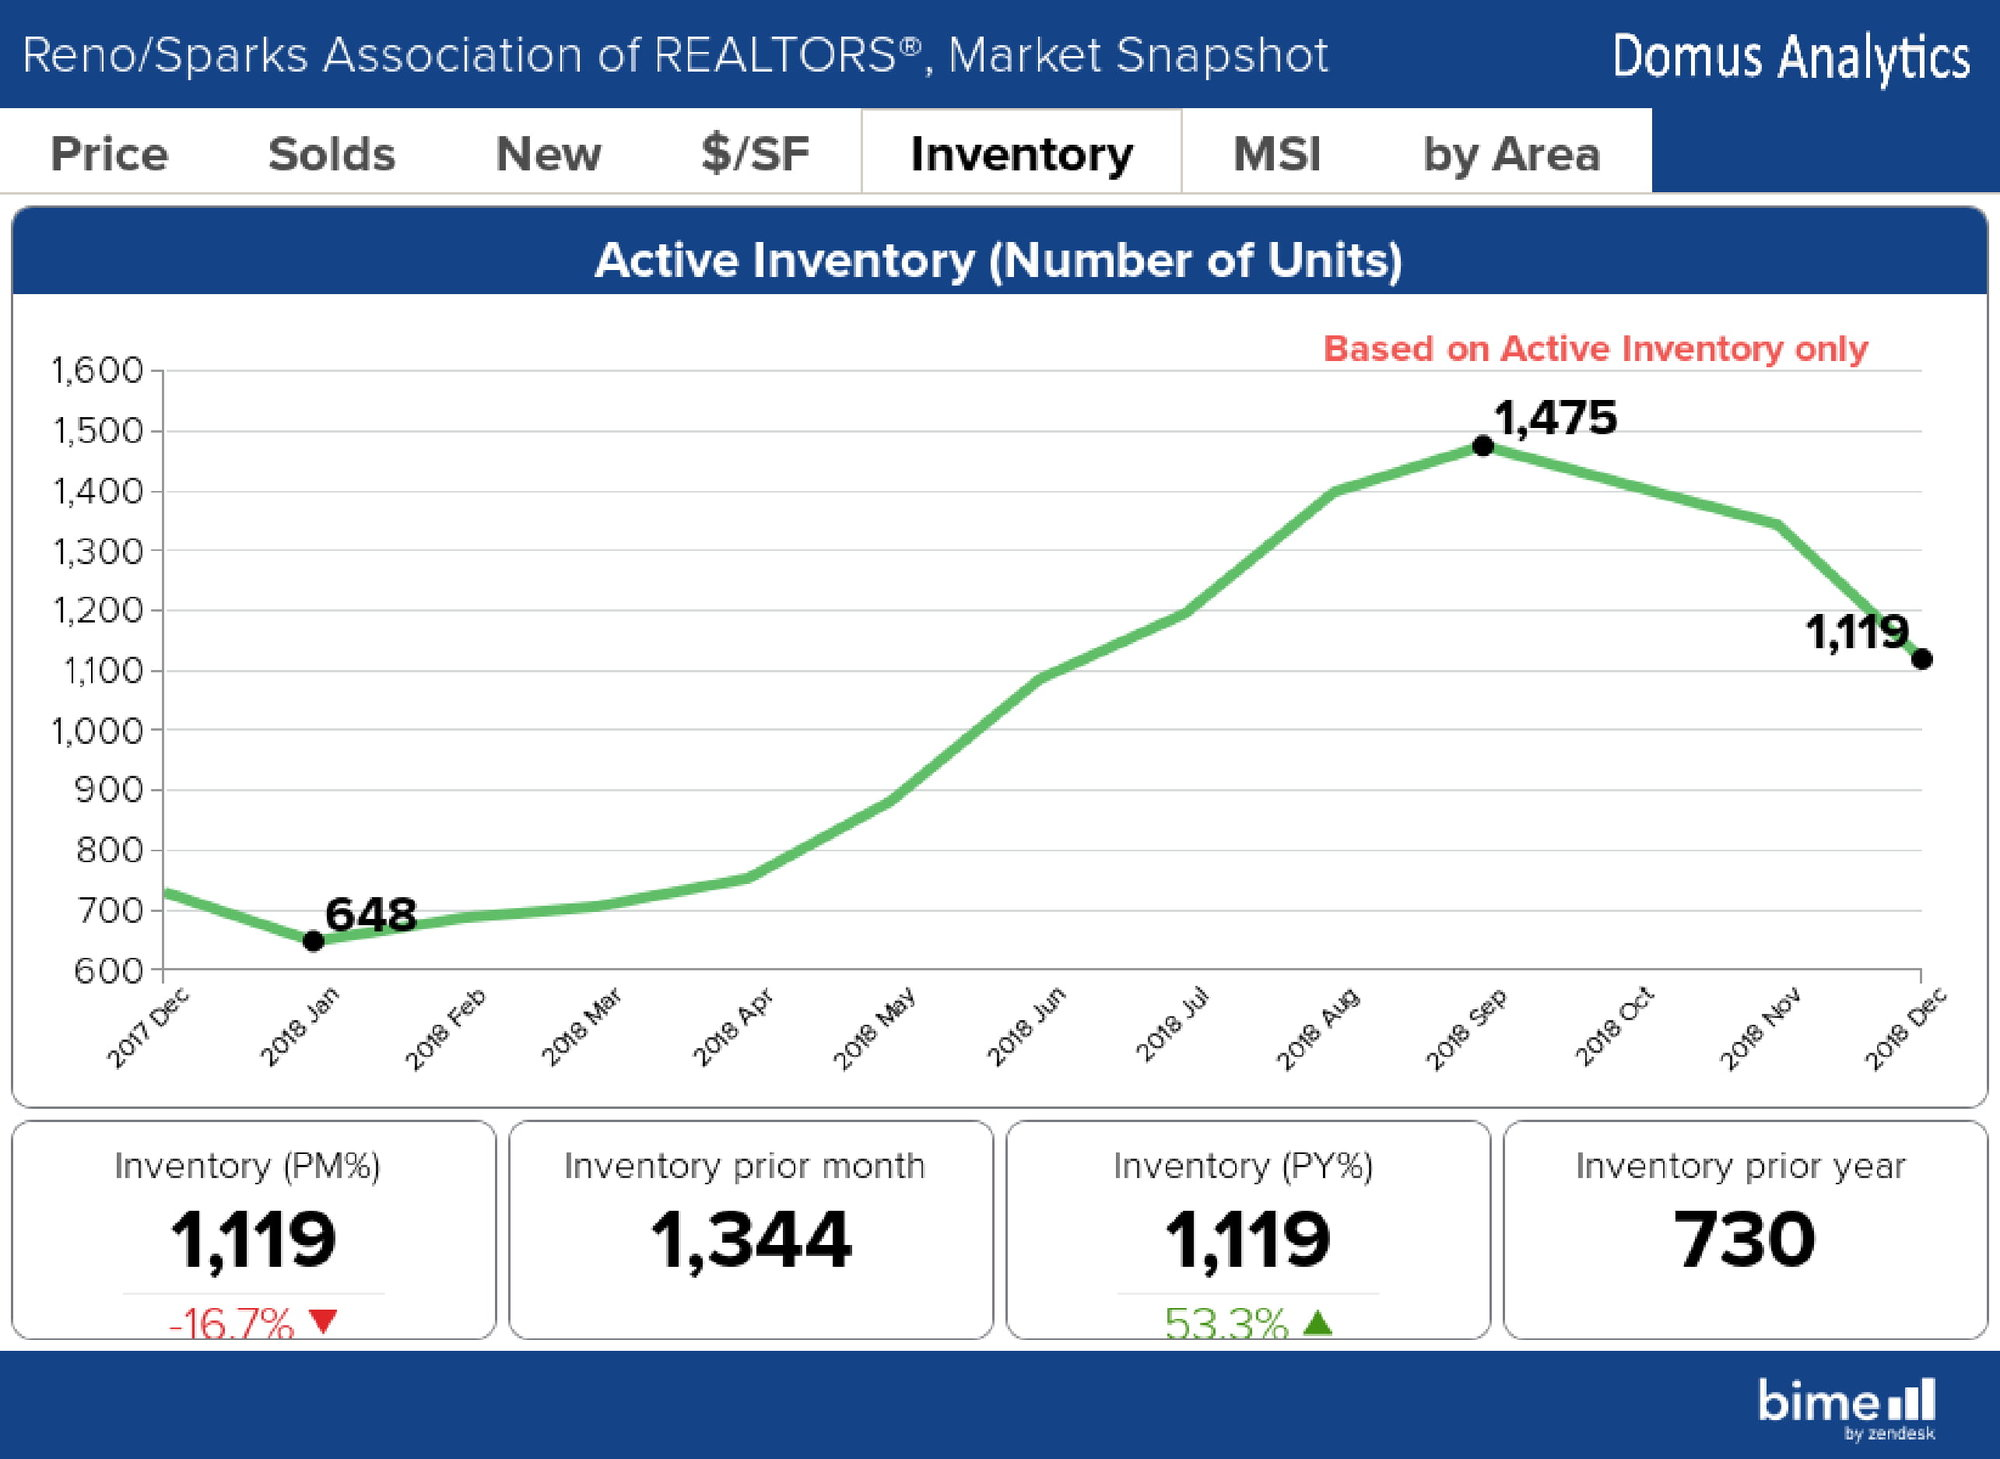 Active Inventory